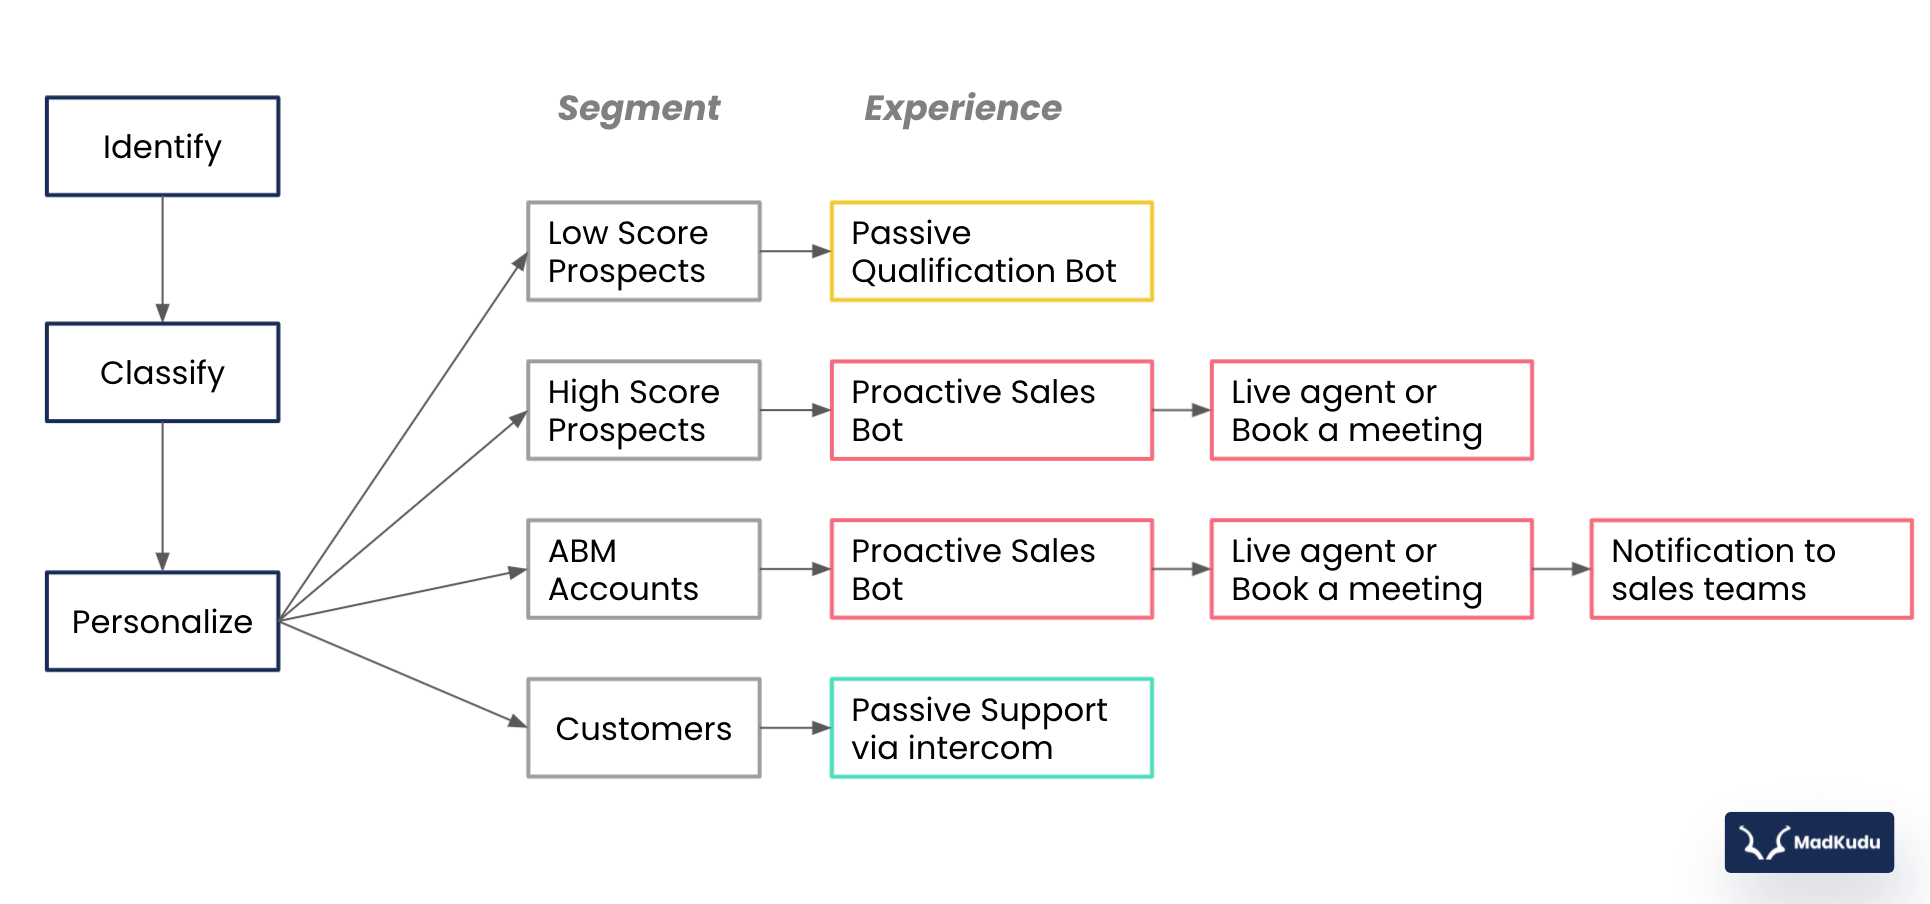 Low-score prospects get a passive qualification bot; high-score prospects get a proactive sales bot that leads them to a live agent or to book a meeting; ABM accounts also get a proactive sales bot that leads them to a live agent, and the sales team is notified; Current customers get the passive support system